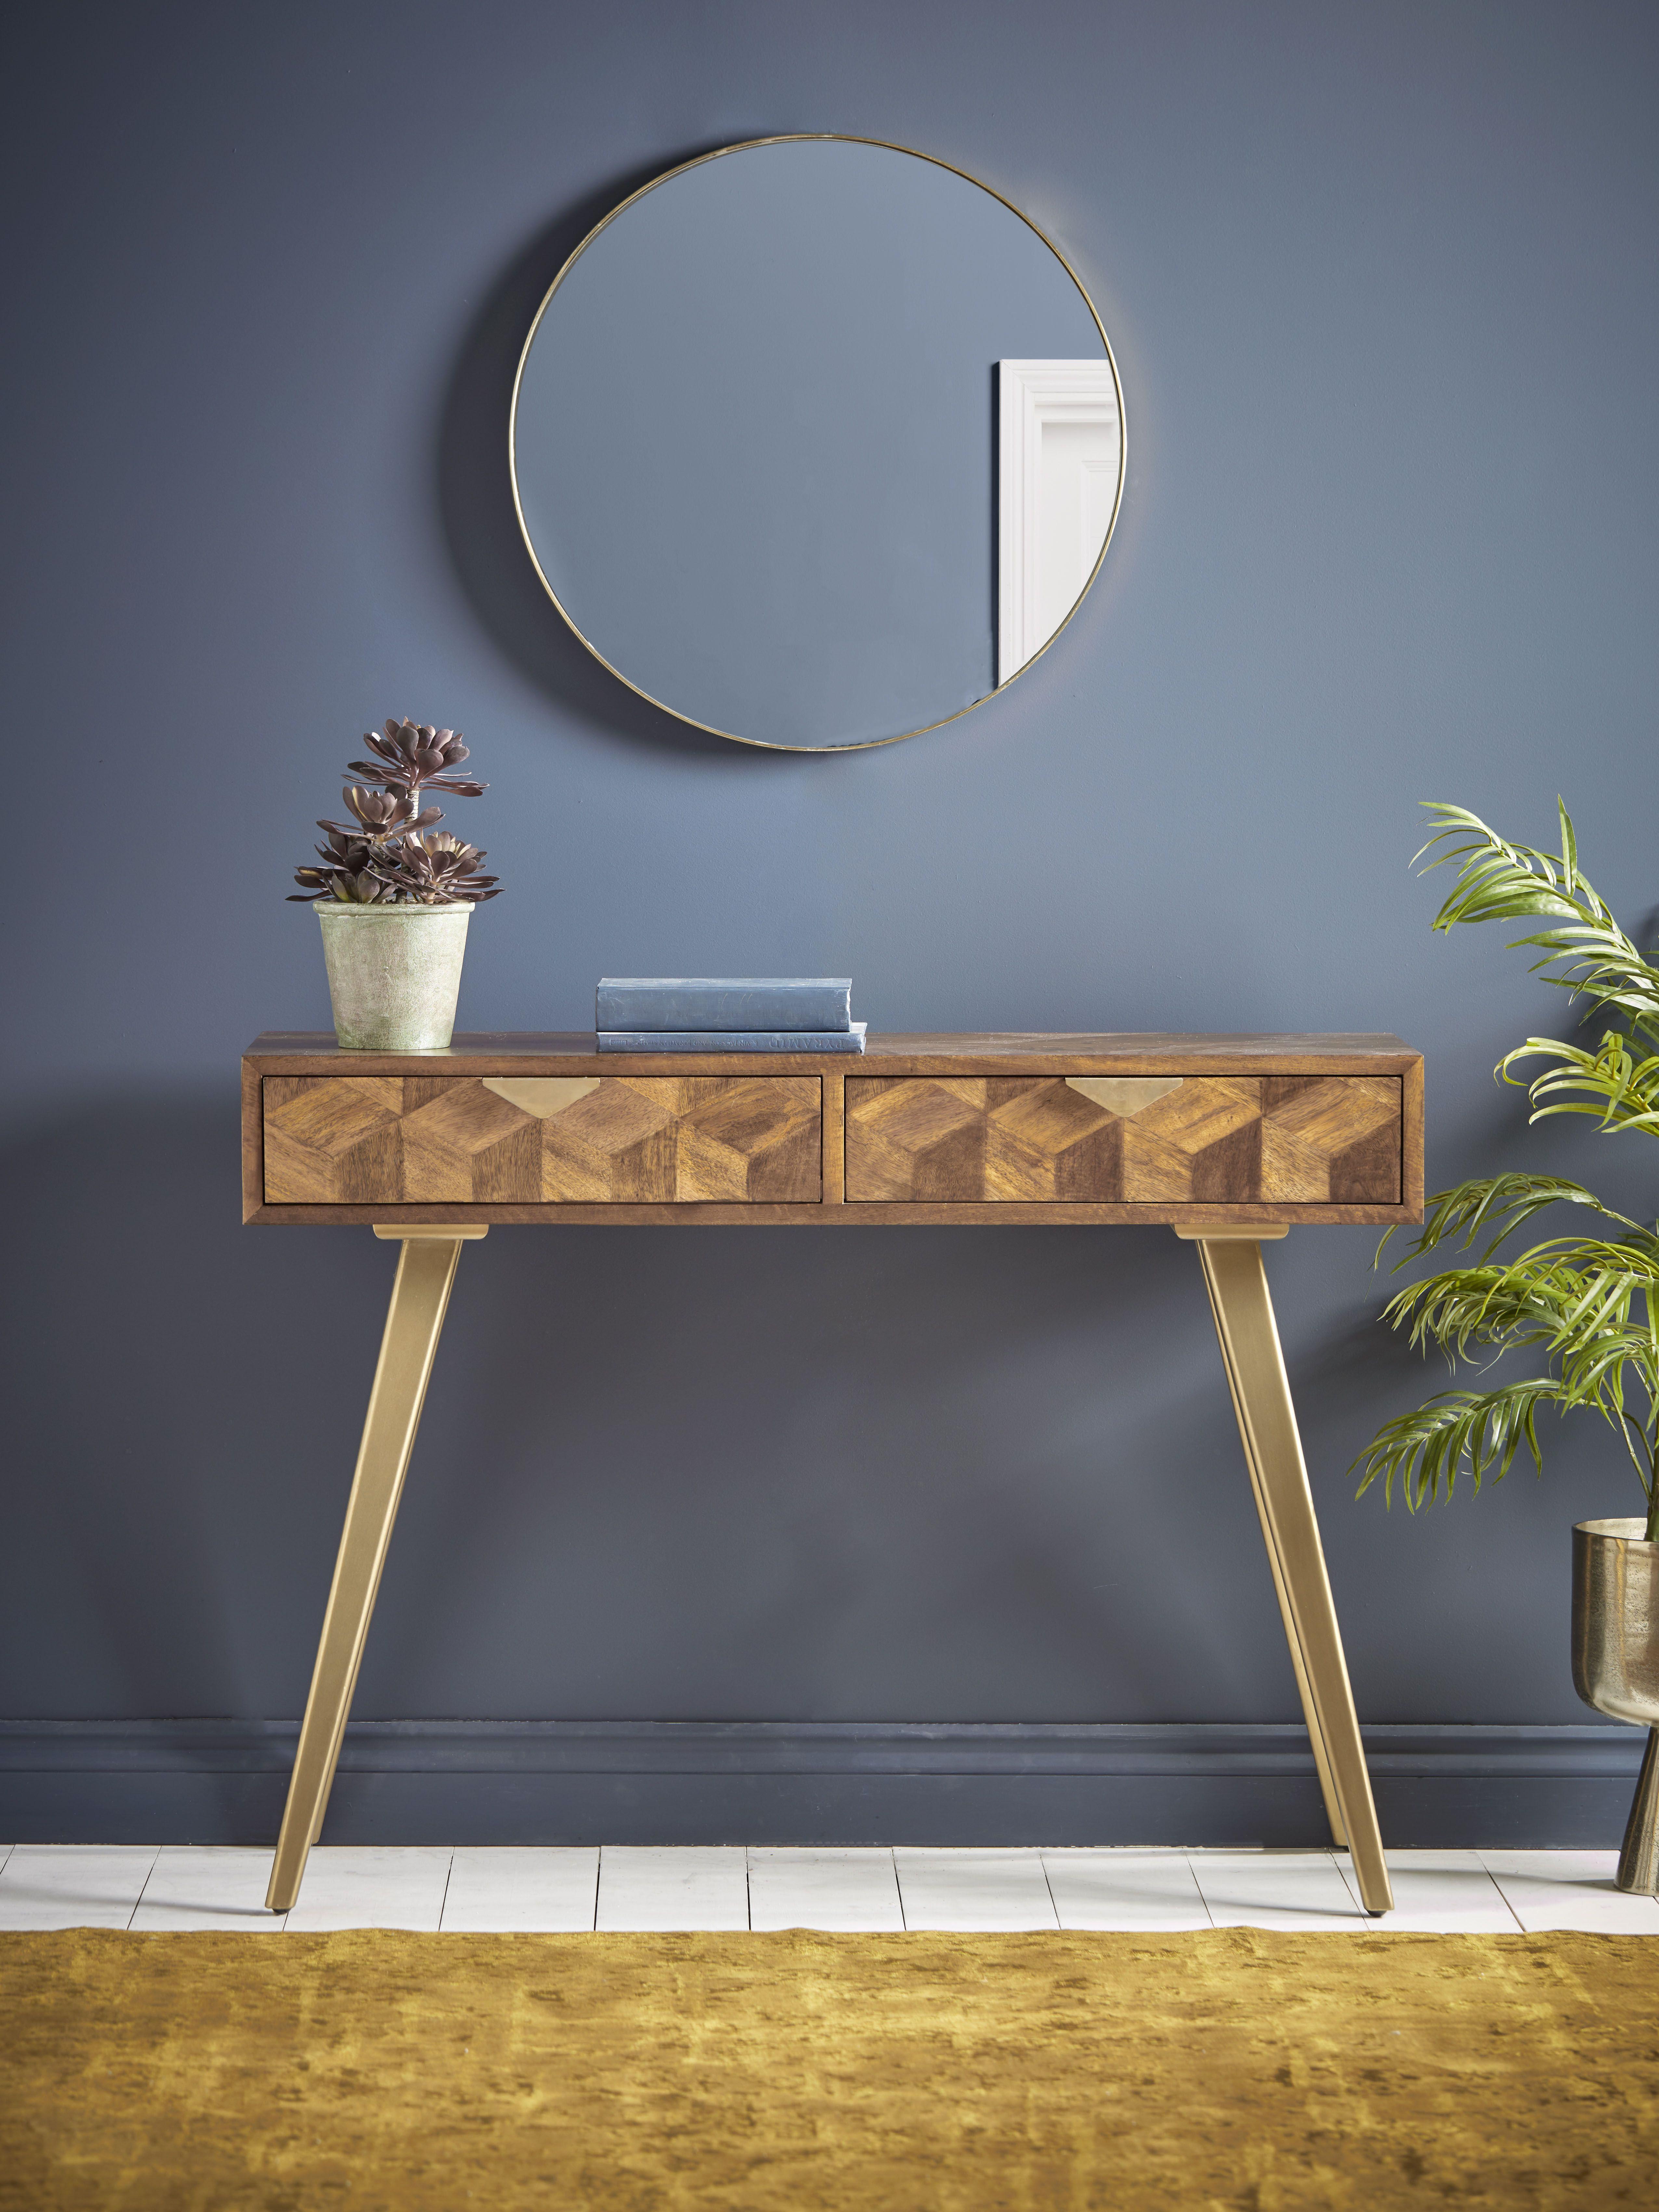 19 Console Tables For 2021 Perfect, Narrow Mirrored Side Table